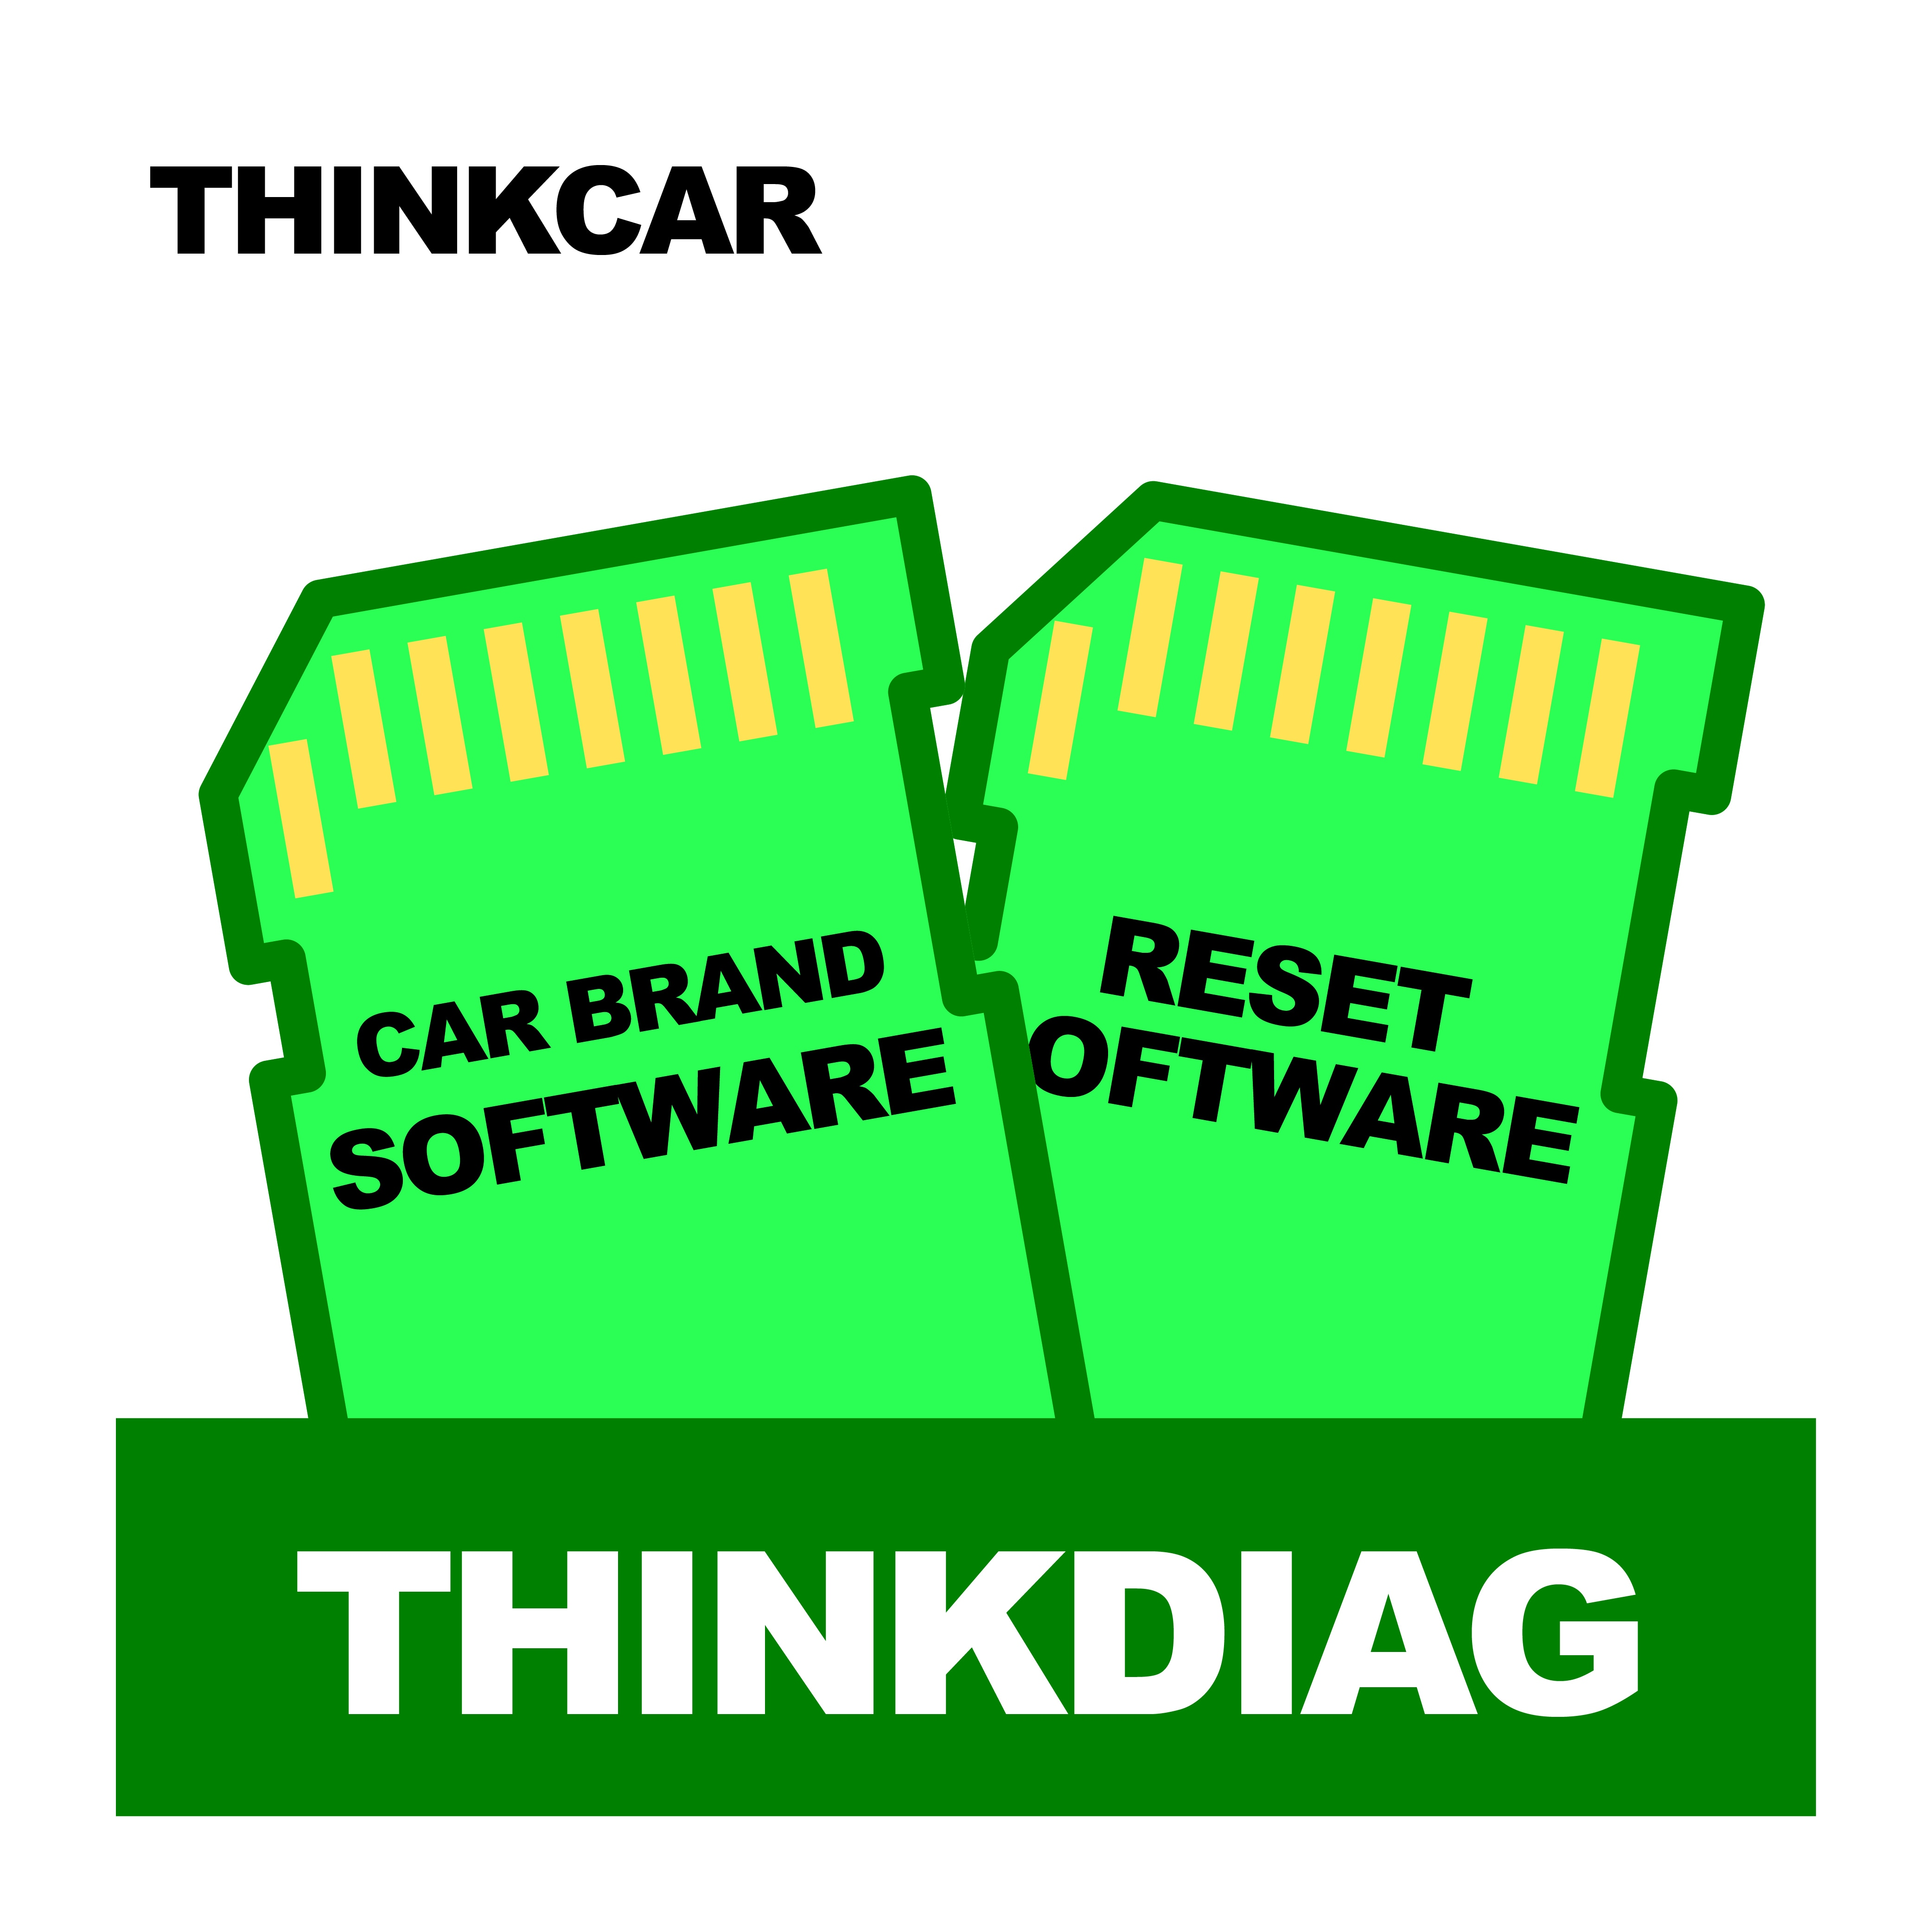 THINKCAR Thinkdiag All software for 1 or 2 Year Open Car Manufacturer Reset Software Activate Full Software for Thinkdiag